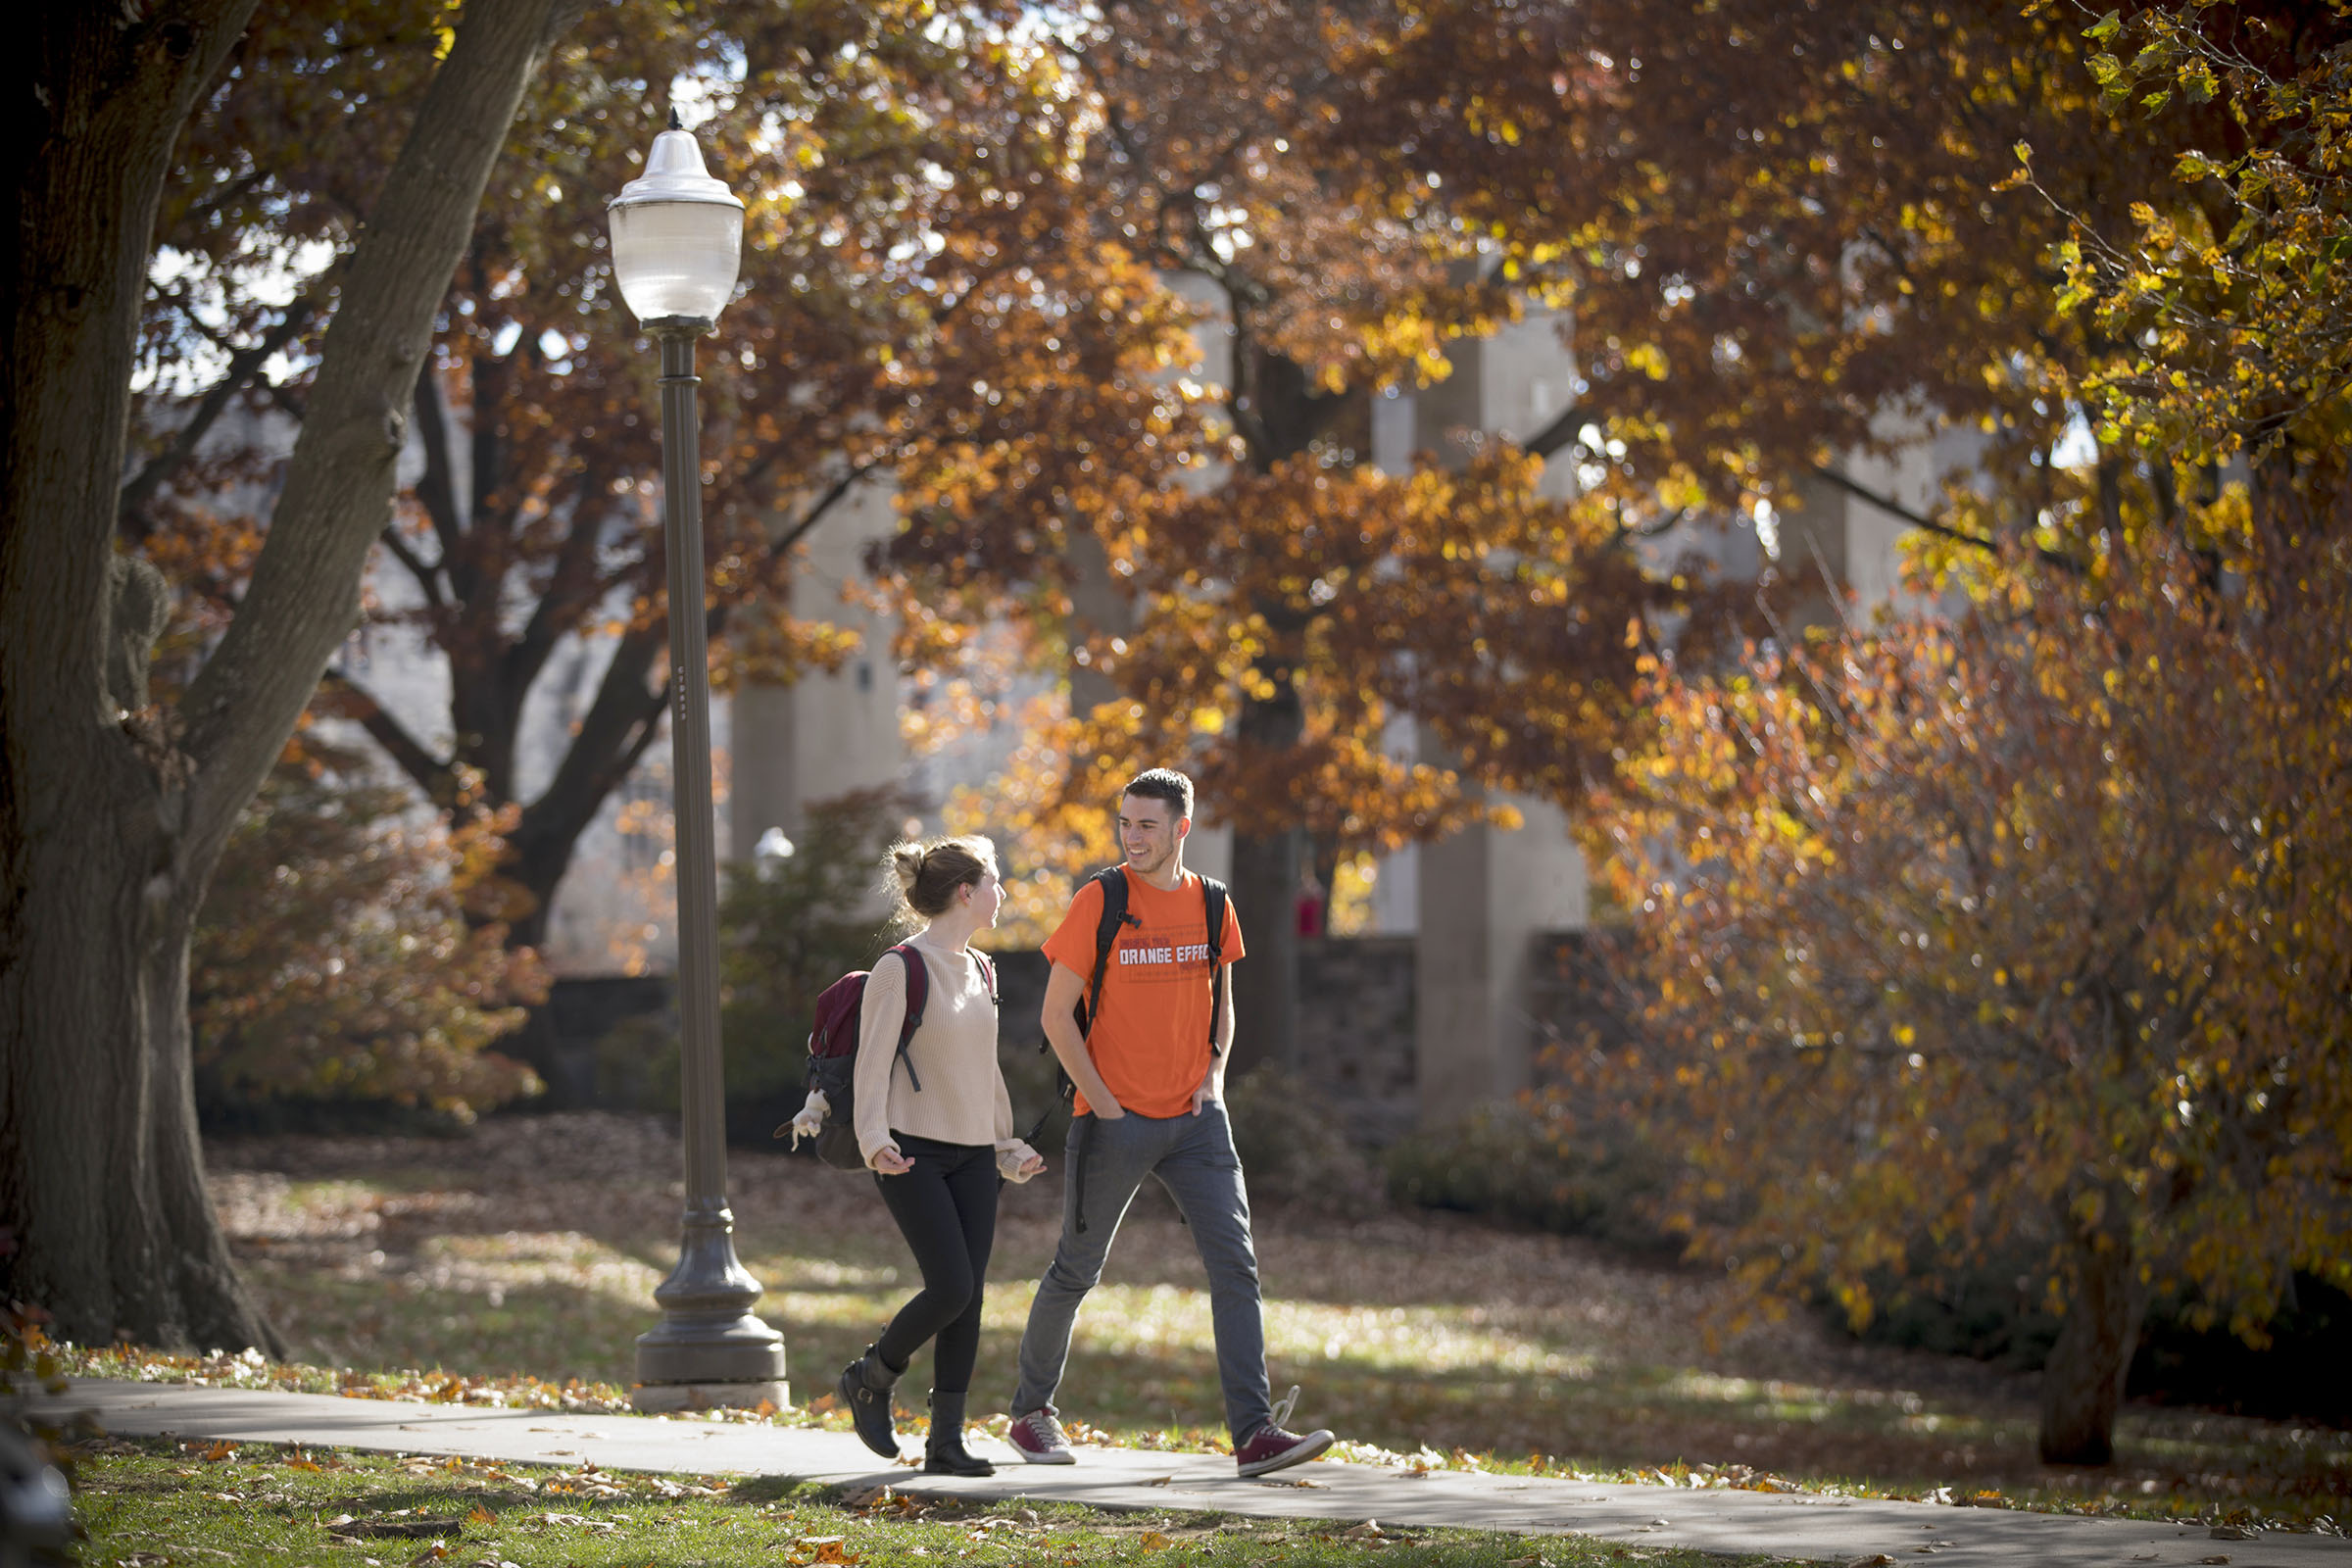 From cultural student unions, to local food bank volunteers, from disciplinary honor societies, to sports and outdoor clubs, Virginia Tech's 700 student organizations give you a community where you can belong.